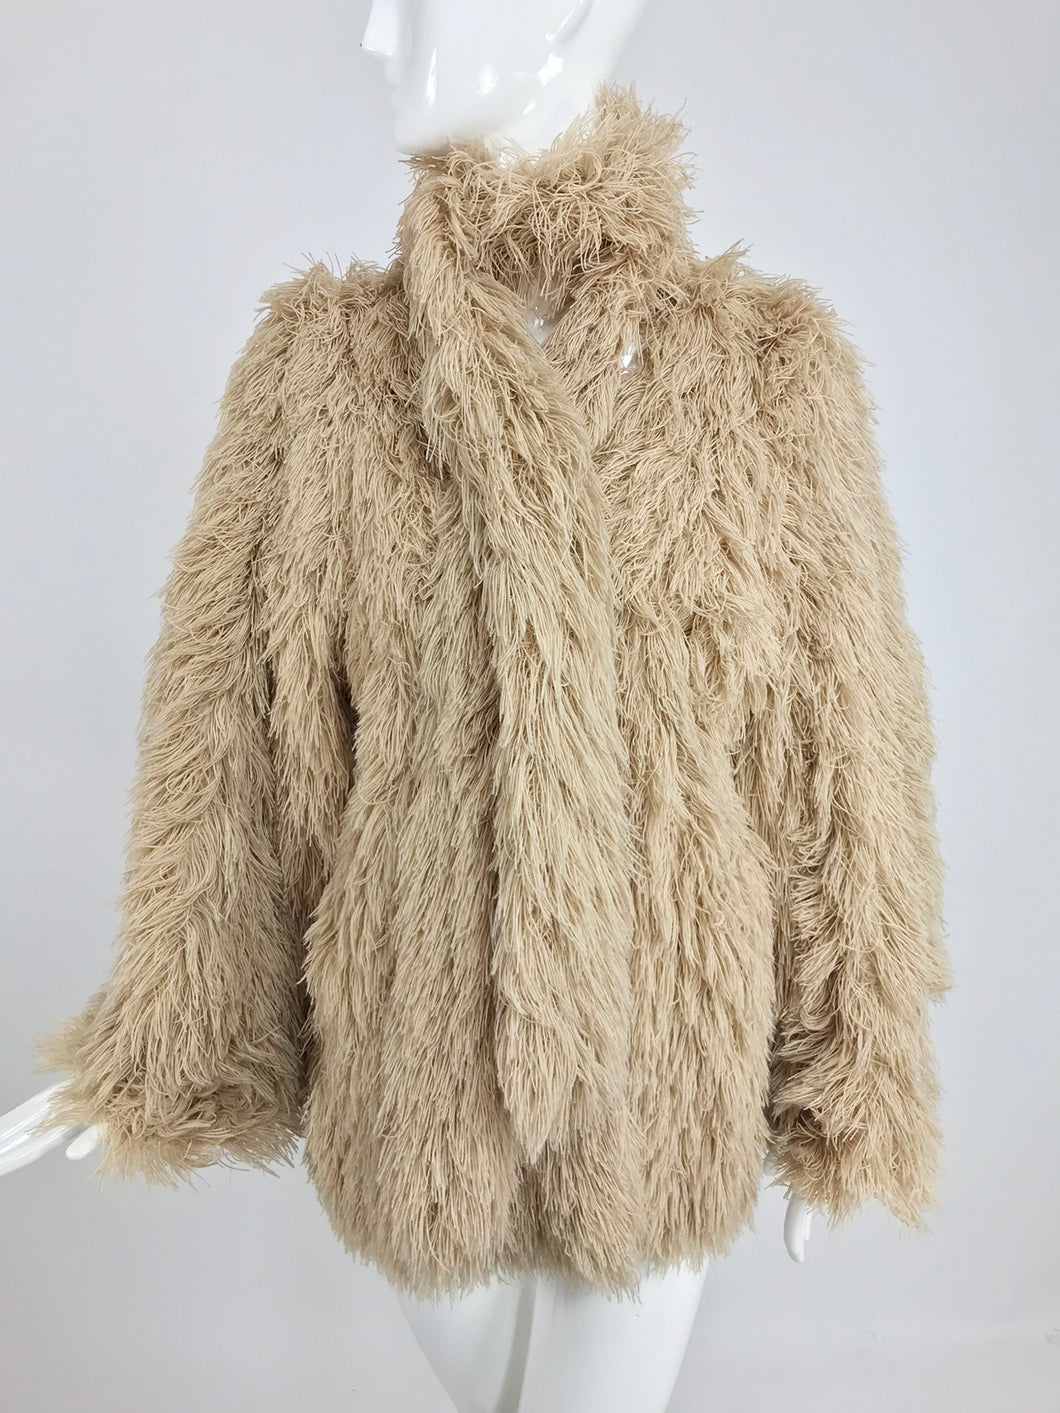 Vintage Arissa France Bone Faux Fur Jacket and Scarf 1980s